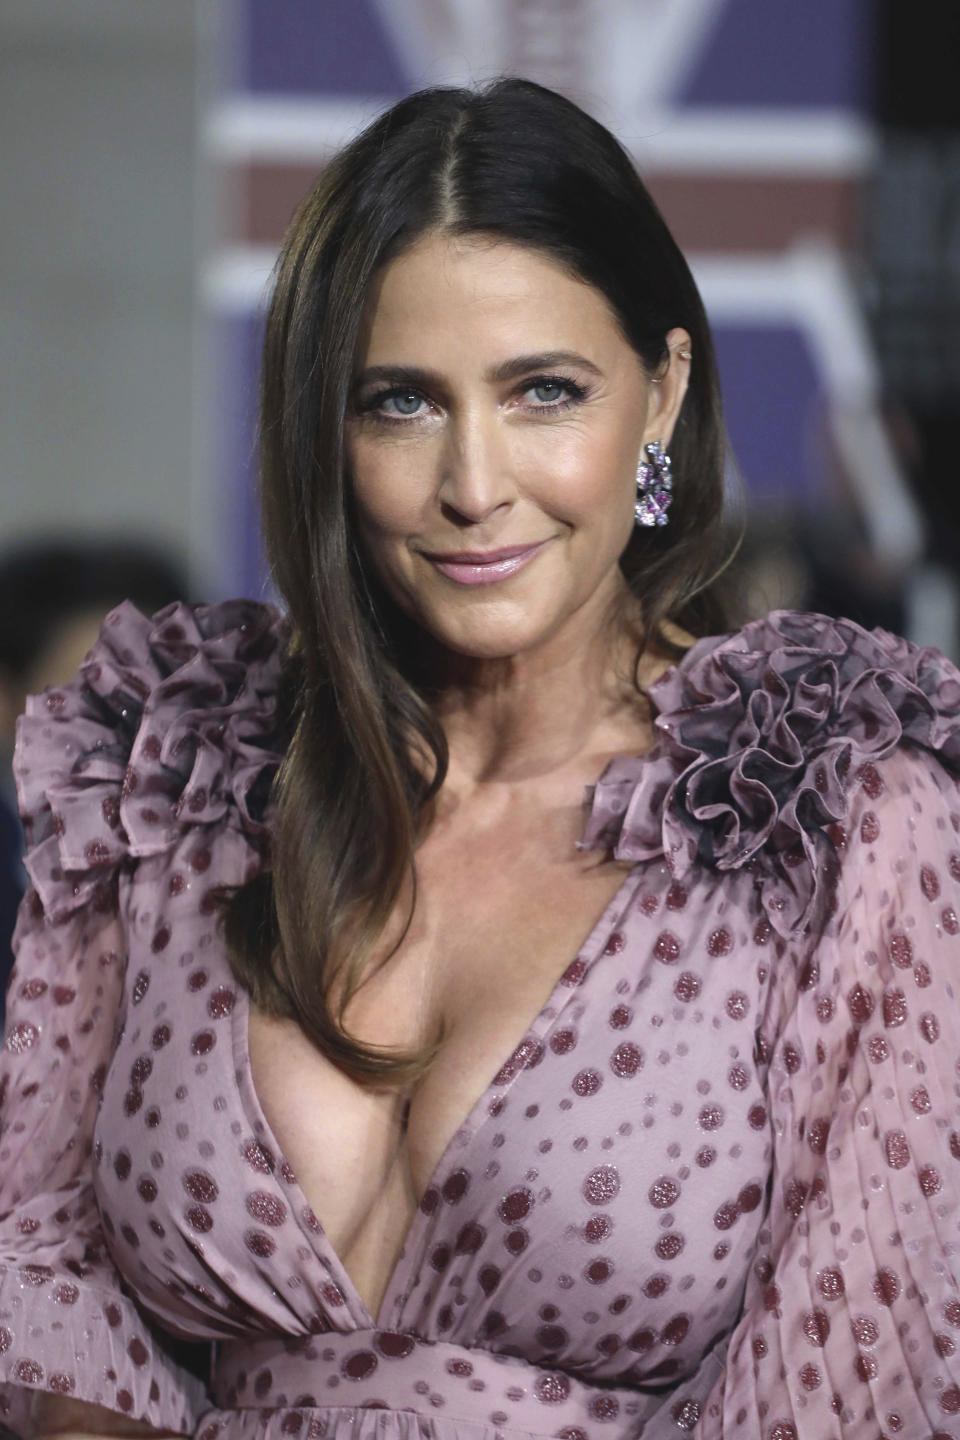 Photo by: zz/KGC-161/STAR MAX/IPx 2019 10/28/19 Lisa Snowdon at The Pride of Britain Awards 2019 held at the Grosvenor House Hotel on October 28, 2019 in London, England, UK.